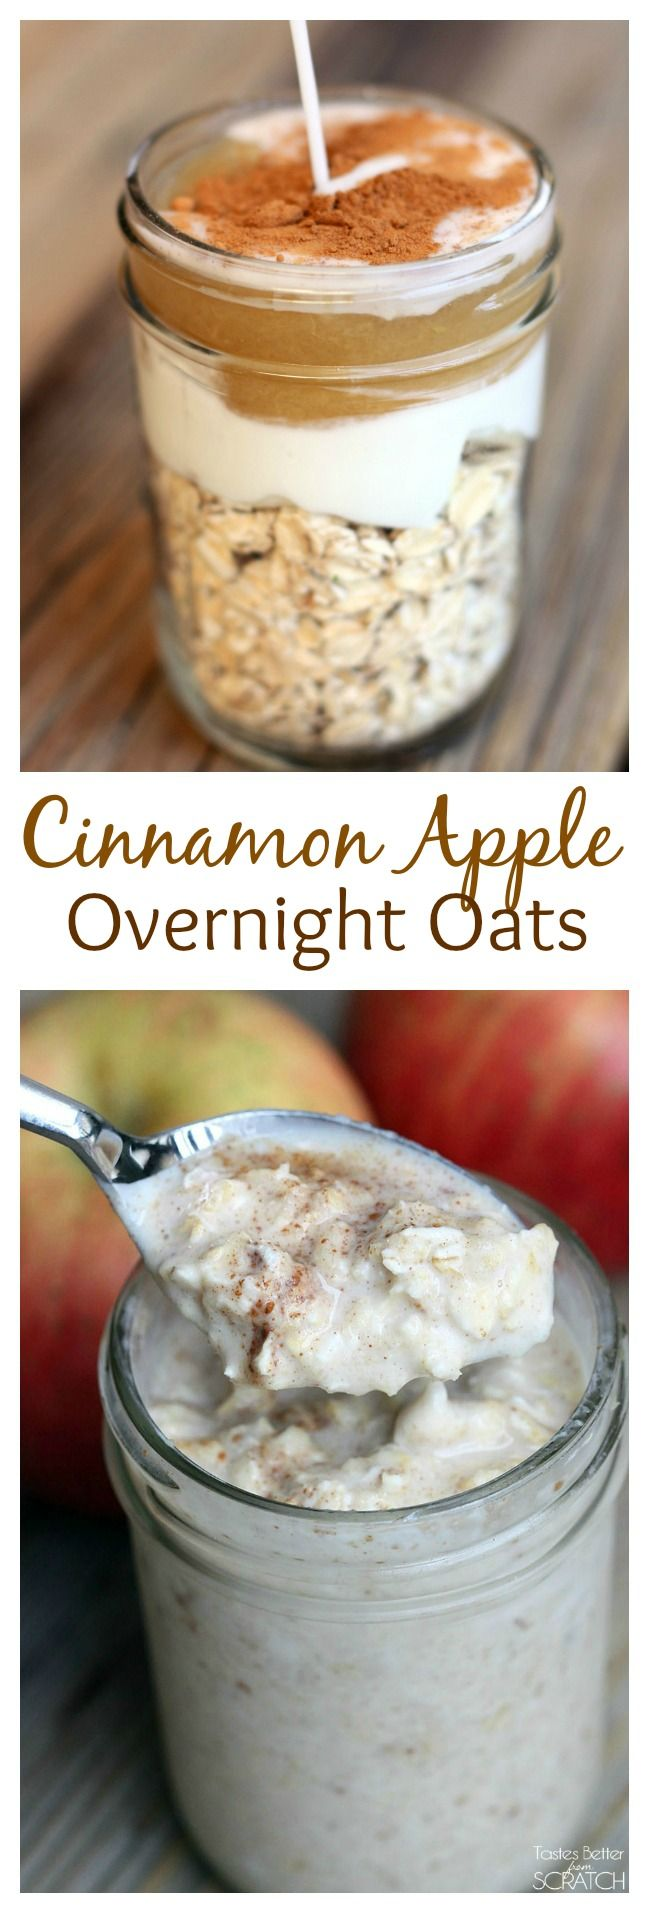 Cinnamon Apple Overnight Oats the easiest, healthy breakfast! Mix the ingredients the night before and it's ready to go by morning